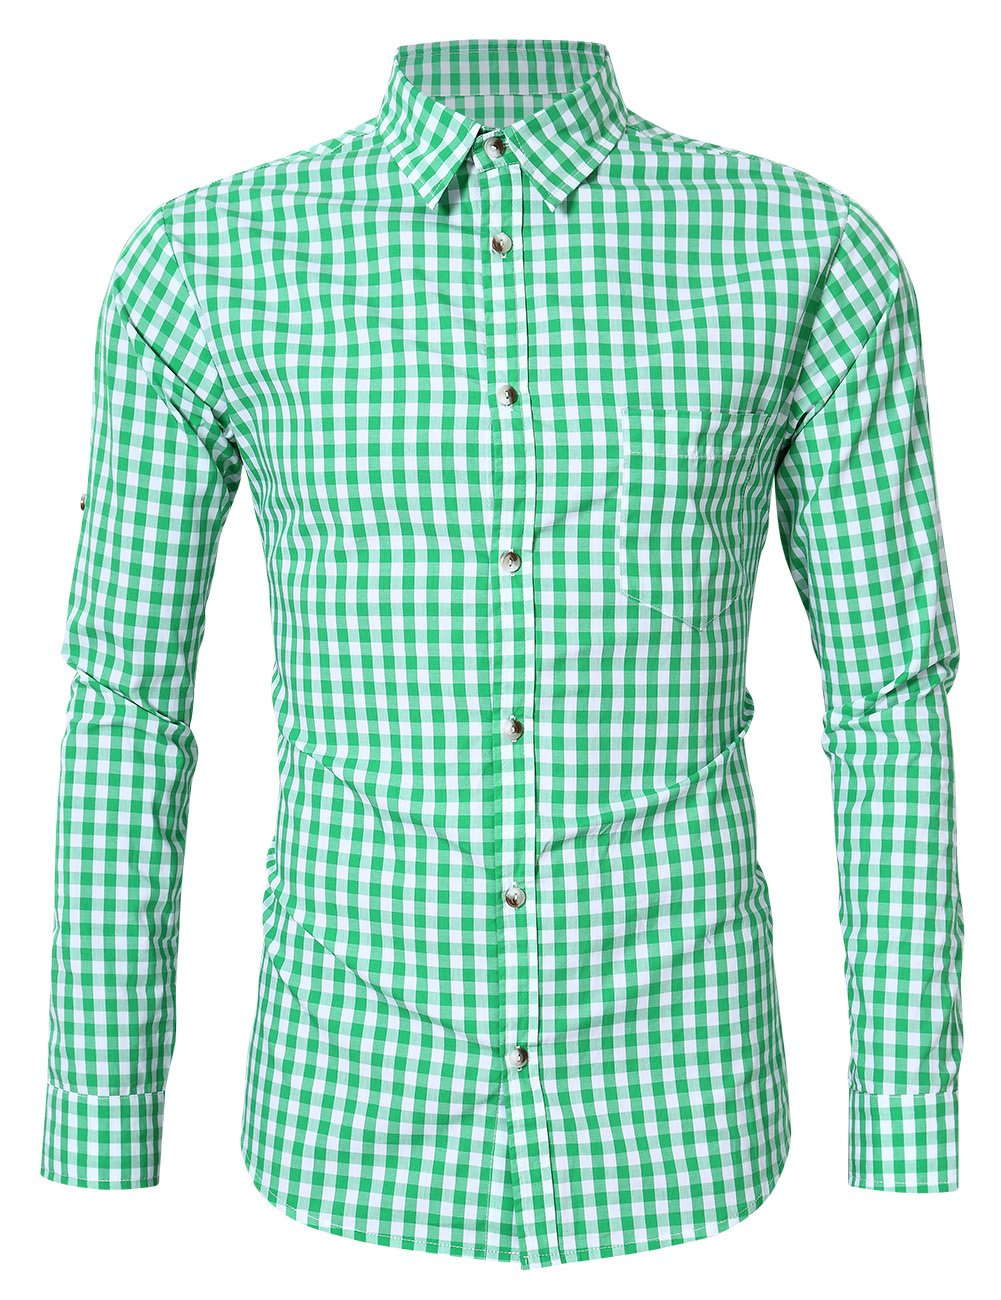 GloryStar Men's Casual Slim Fit Plaid Shirt Button Down Dress Shirts for German Bavarian Oktoberfest and Lederhosen HXX#BY*1260